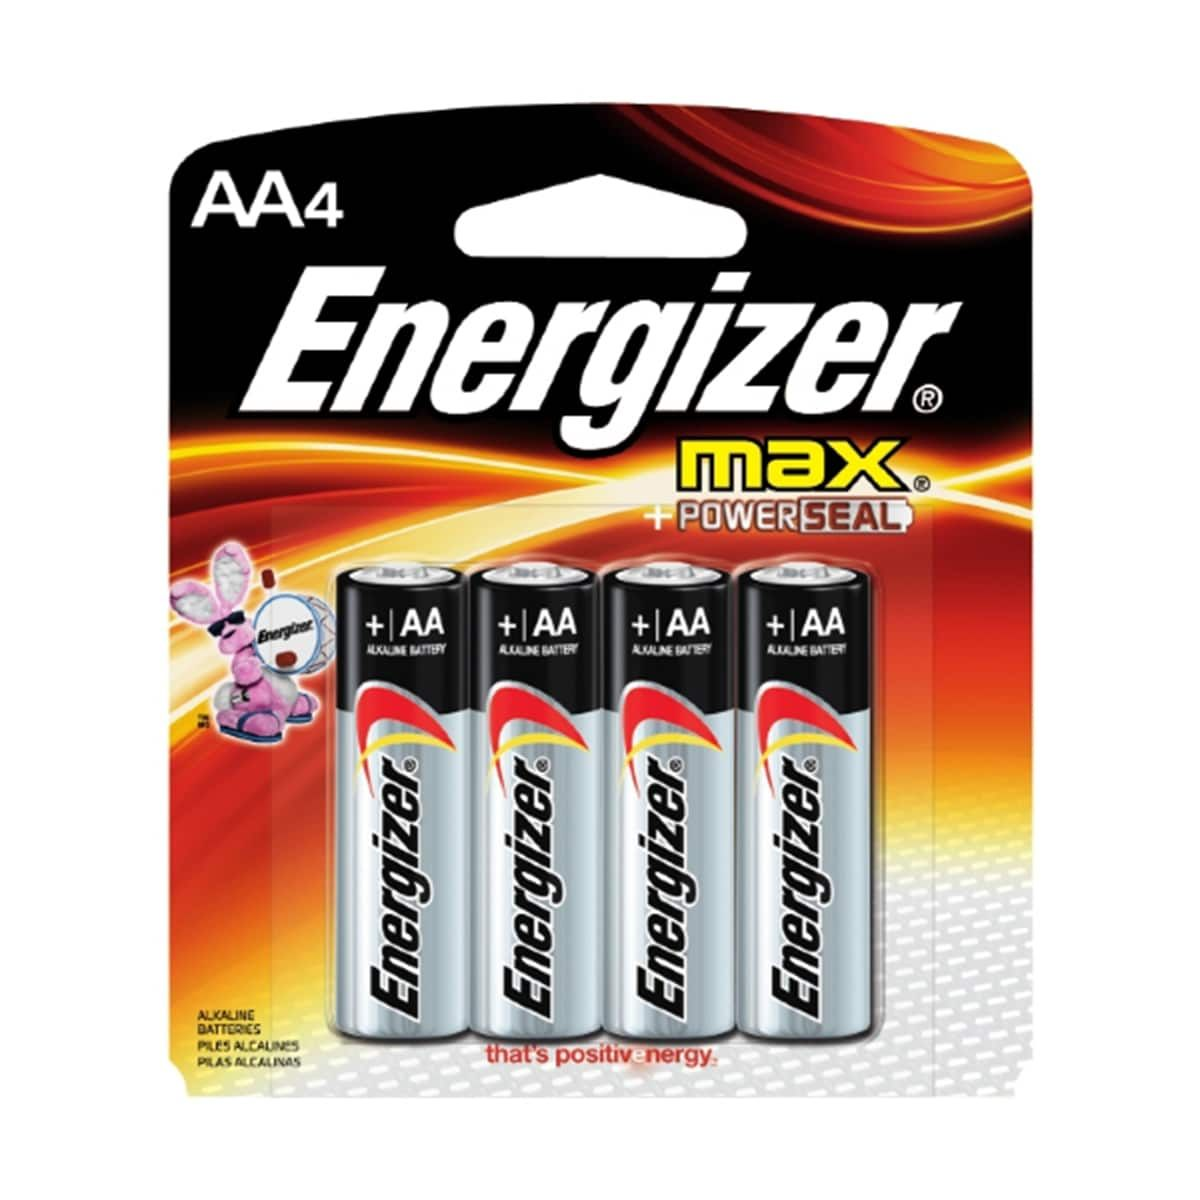 Energizer Max Aa Household Batteries 4ct Energizer Battery Energizer Alkaline Battery